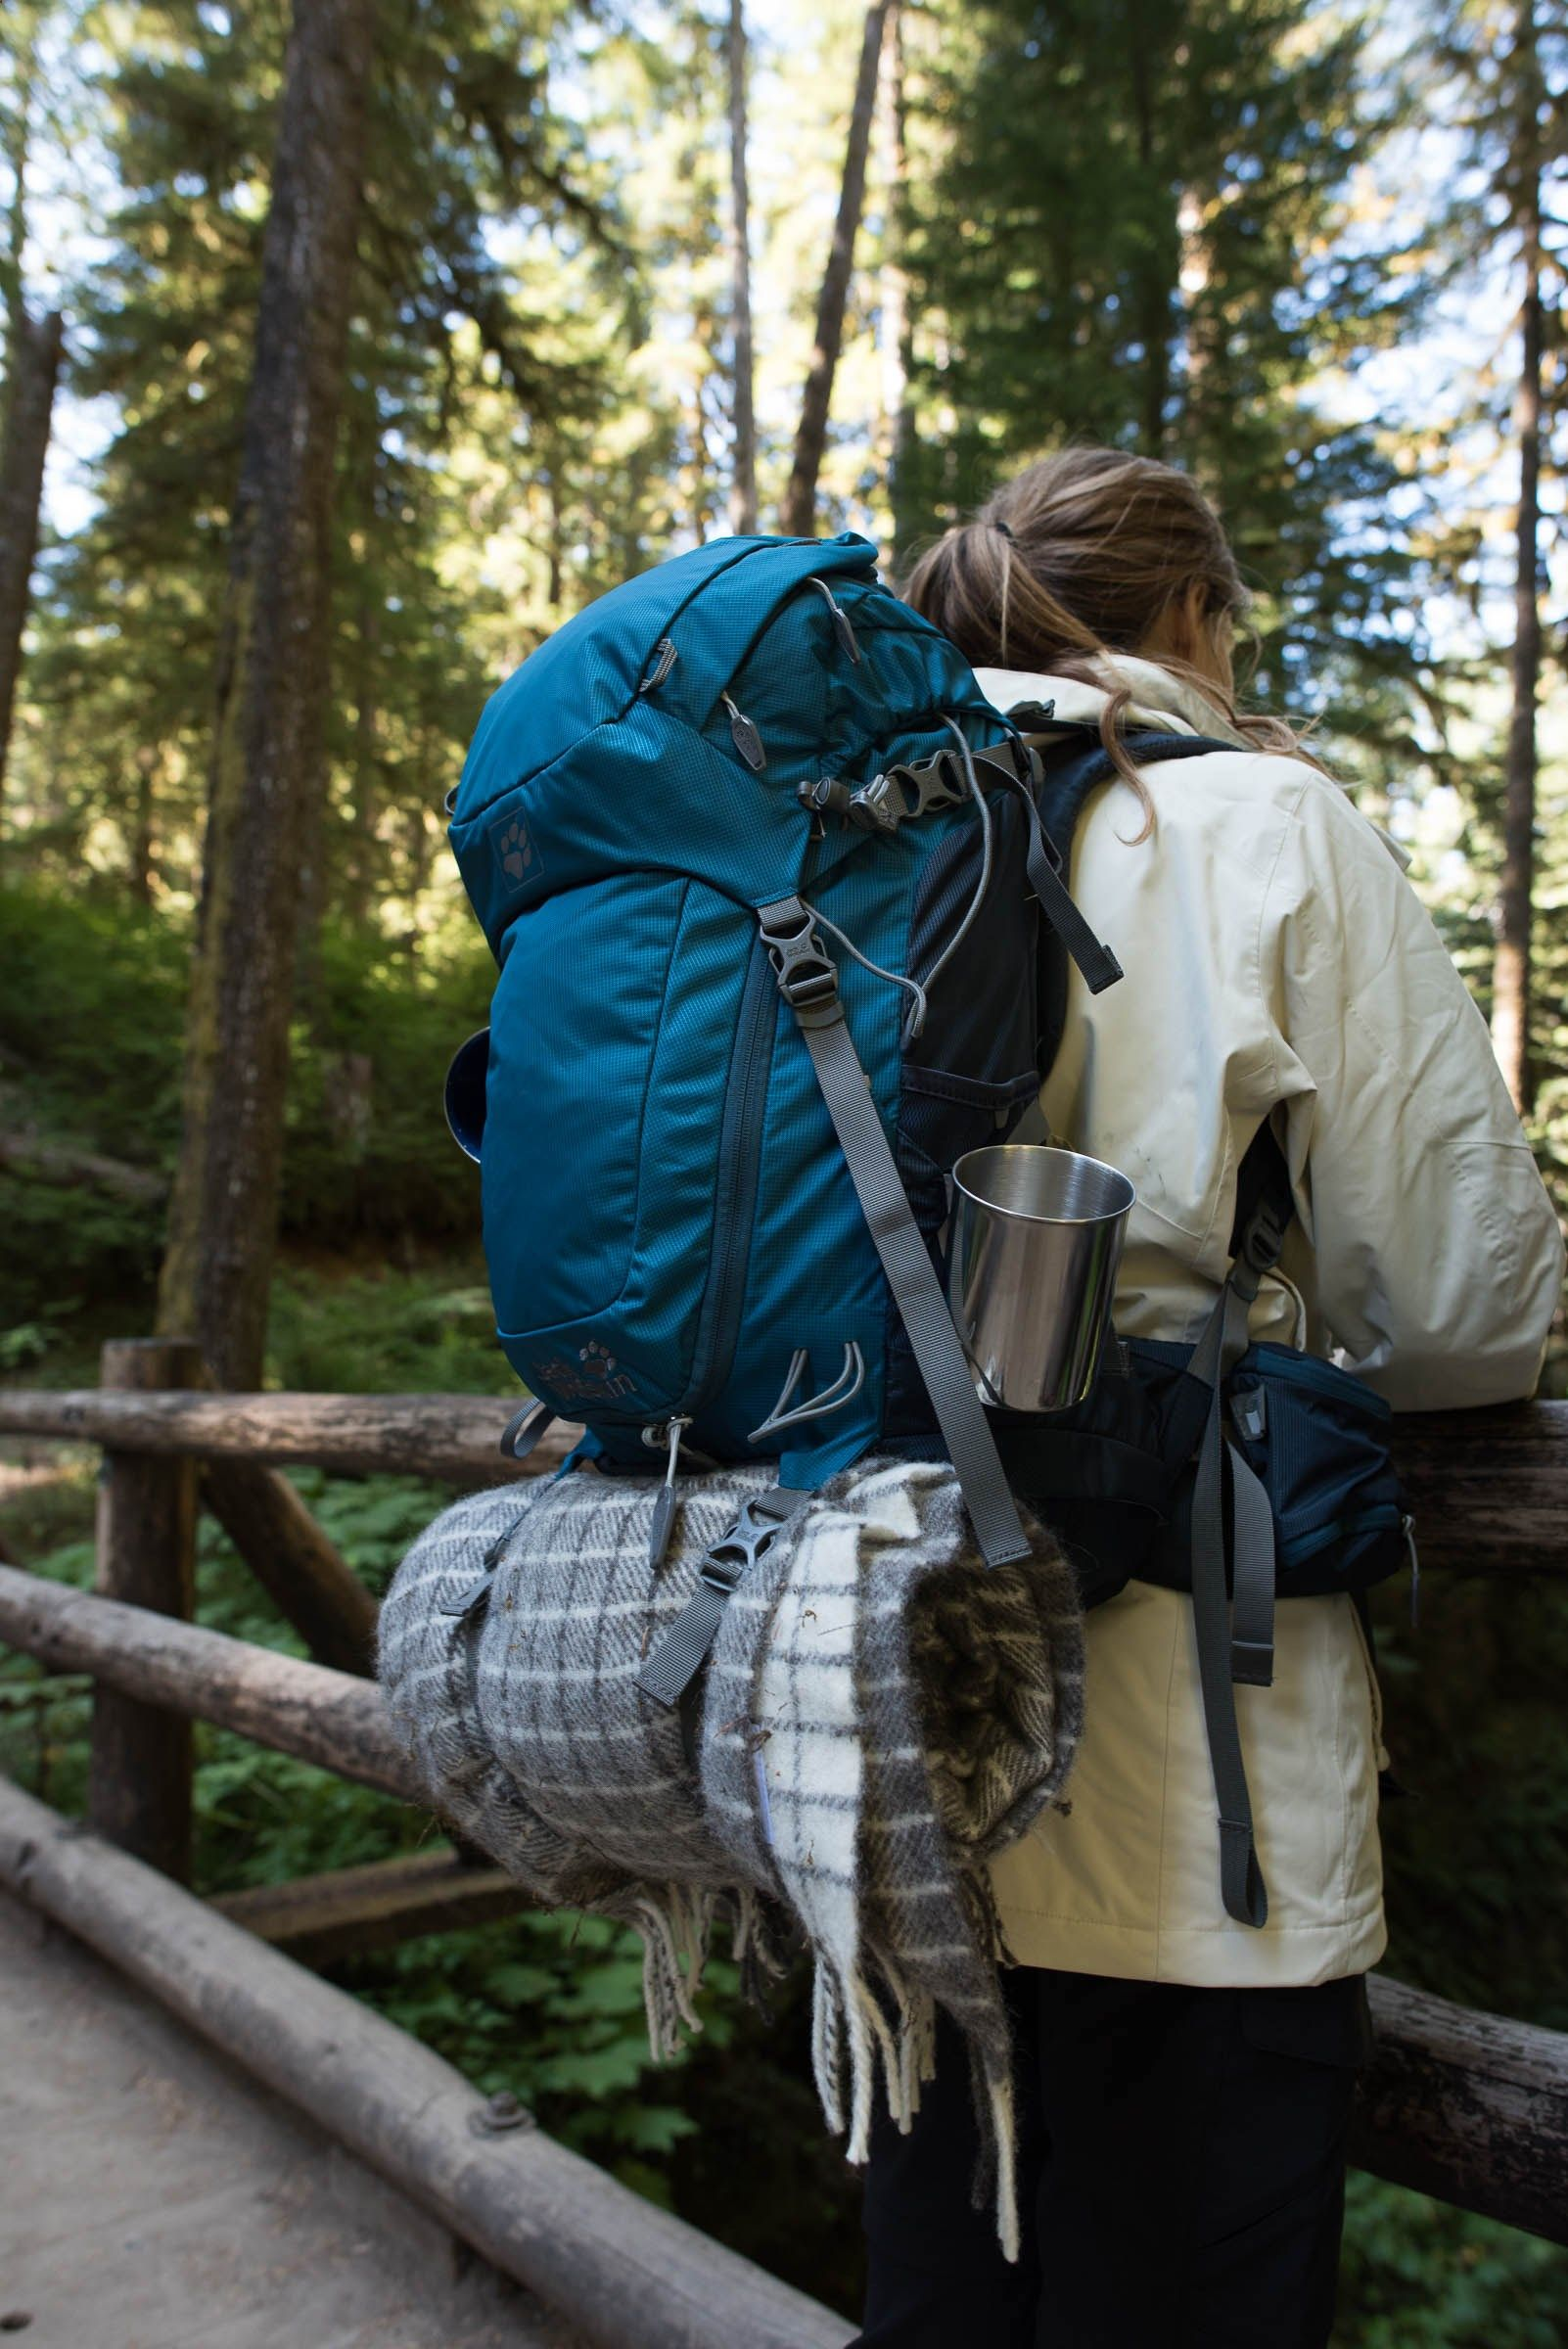 Jack Wolfskin Outdoor Shop by Globe Camp! Everything with